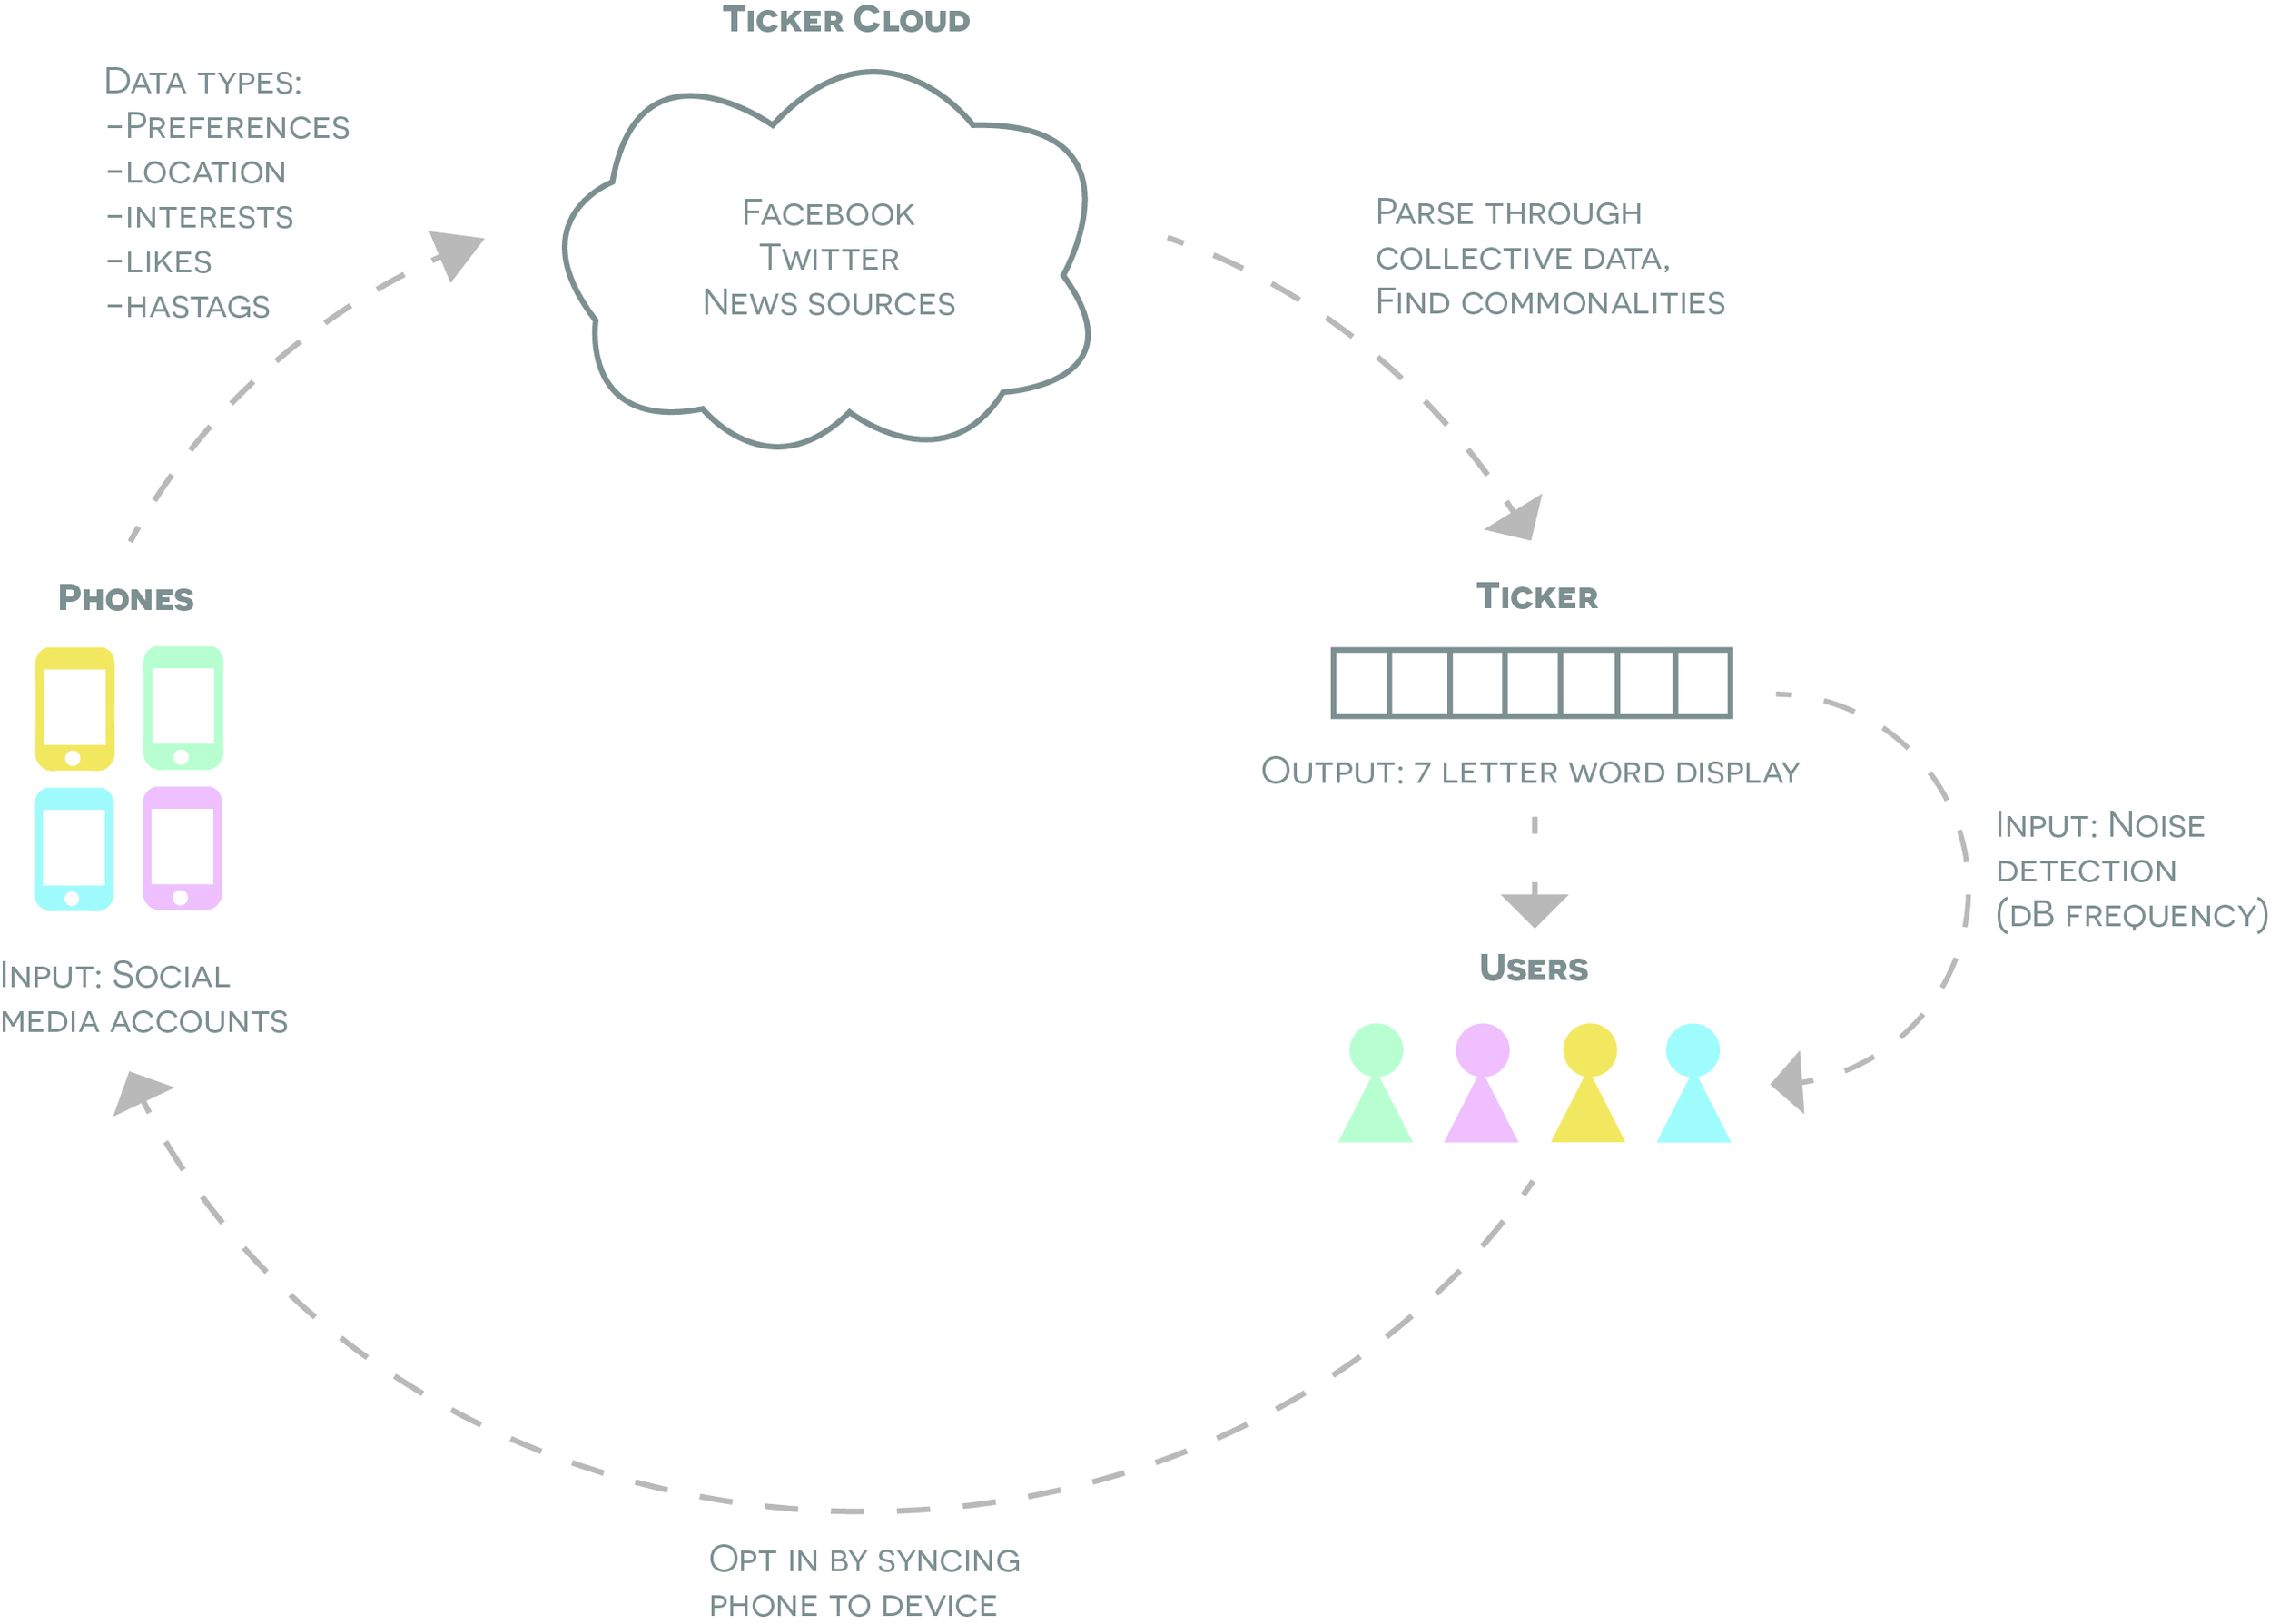 A system diagram we created for the Ticker